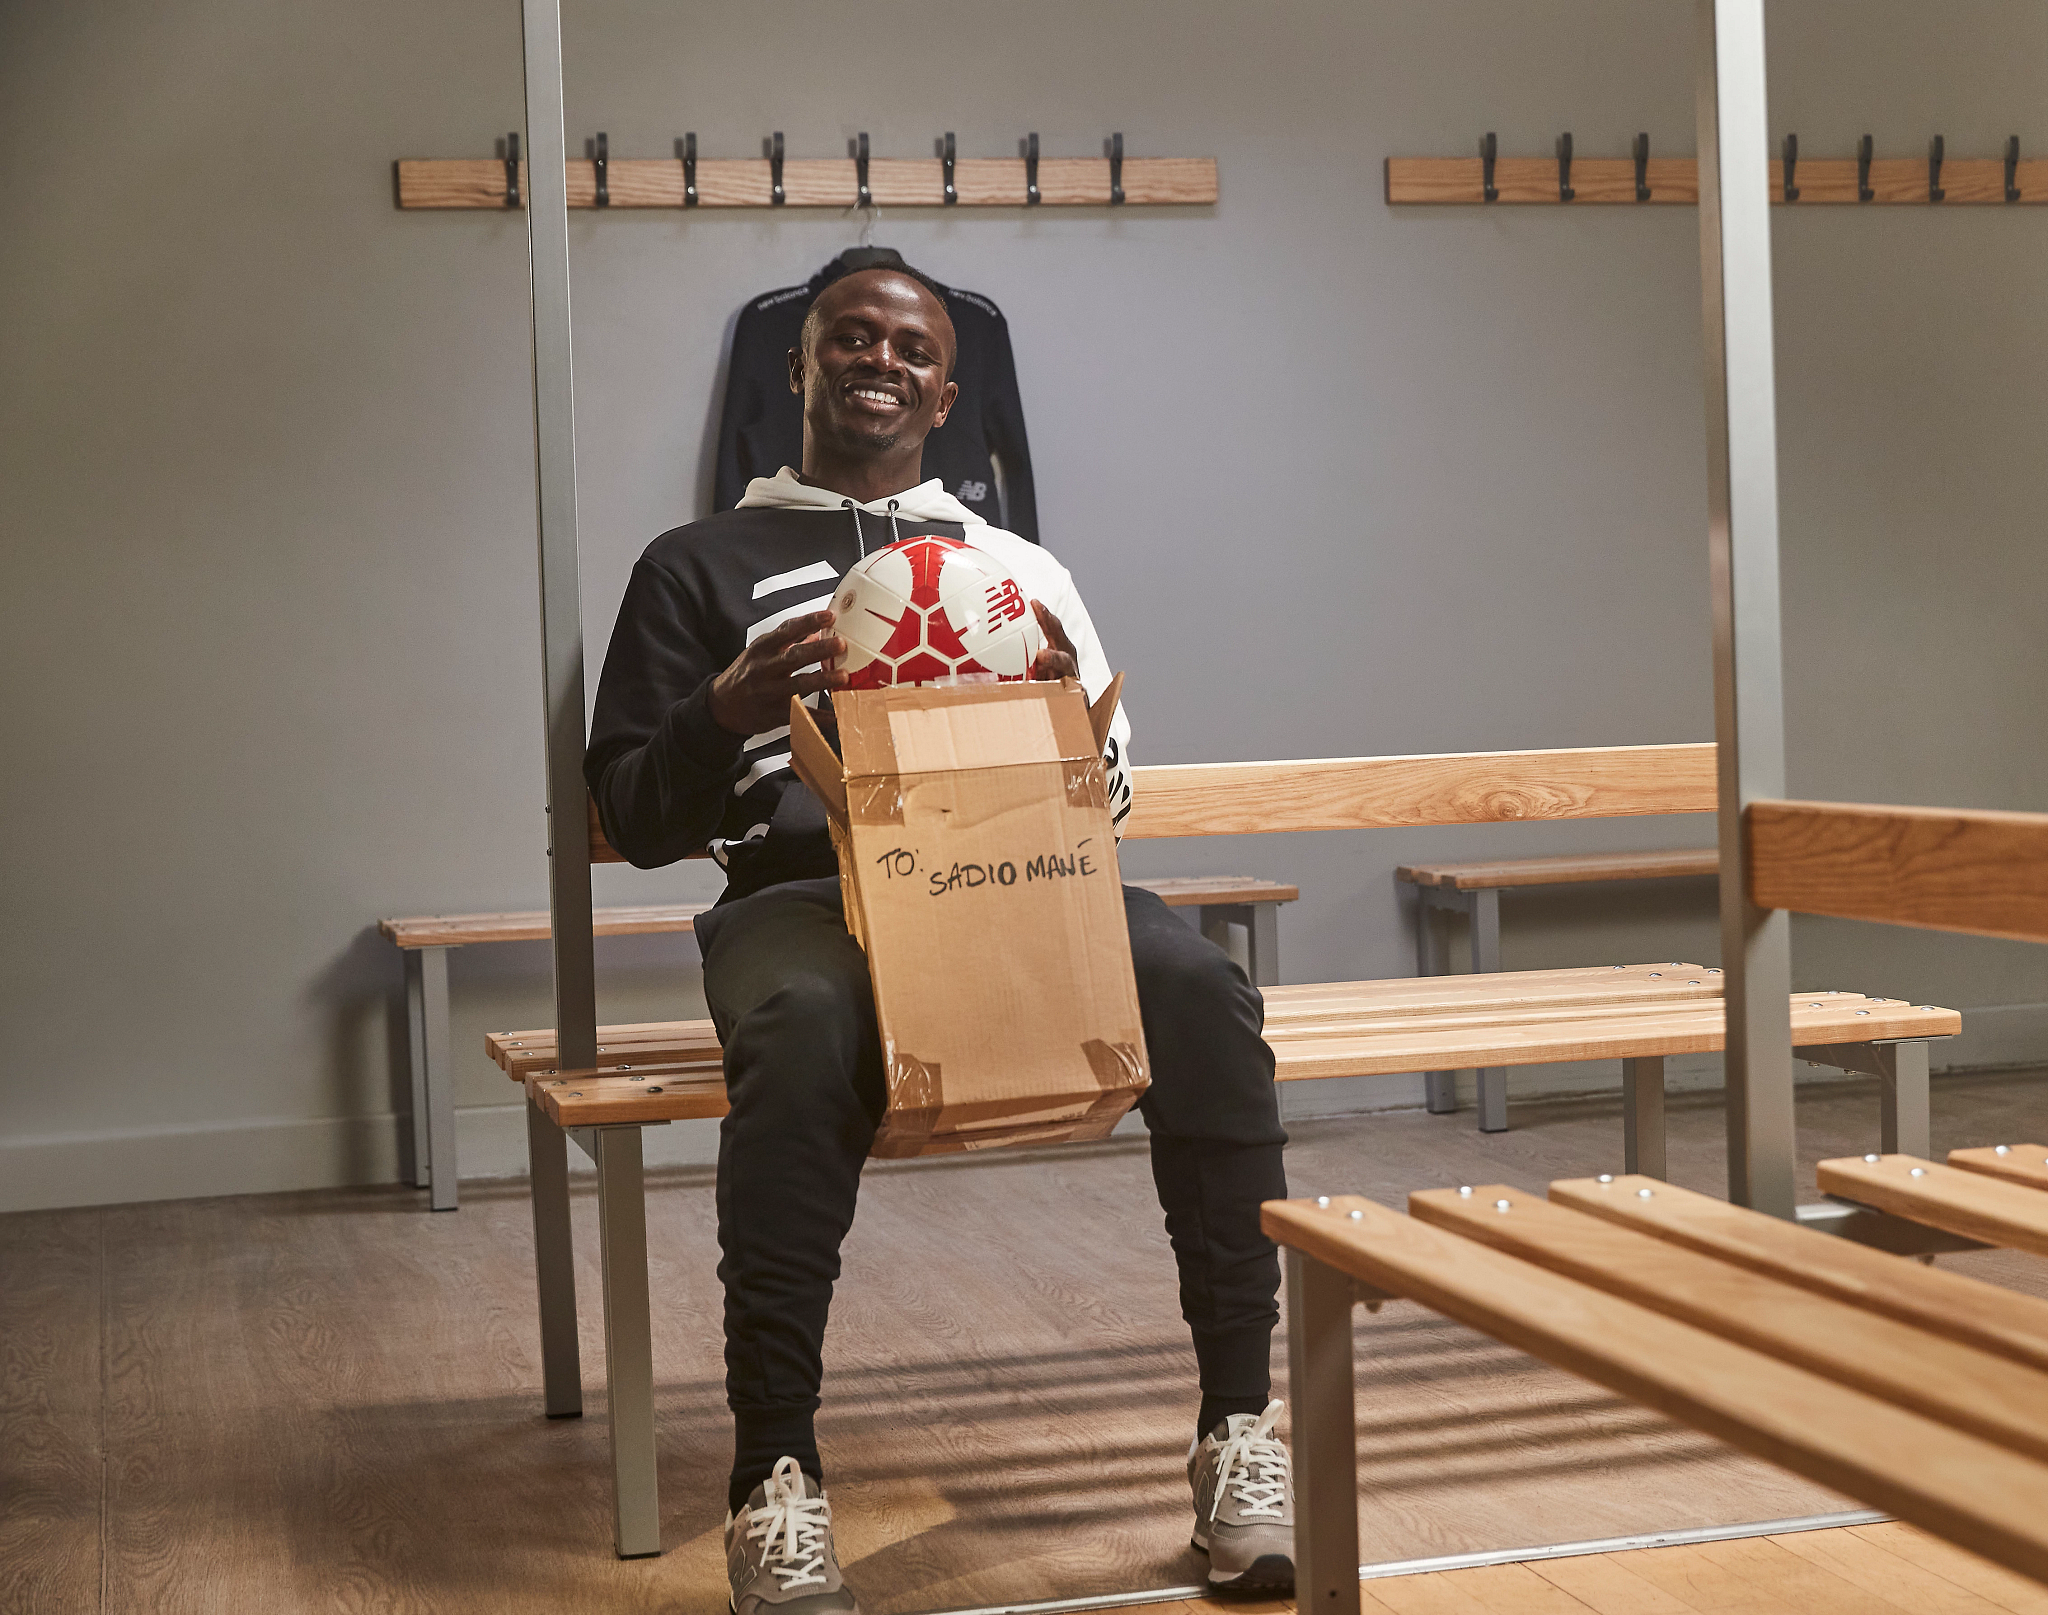 Man smiling while pulling a ball out of a box